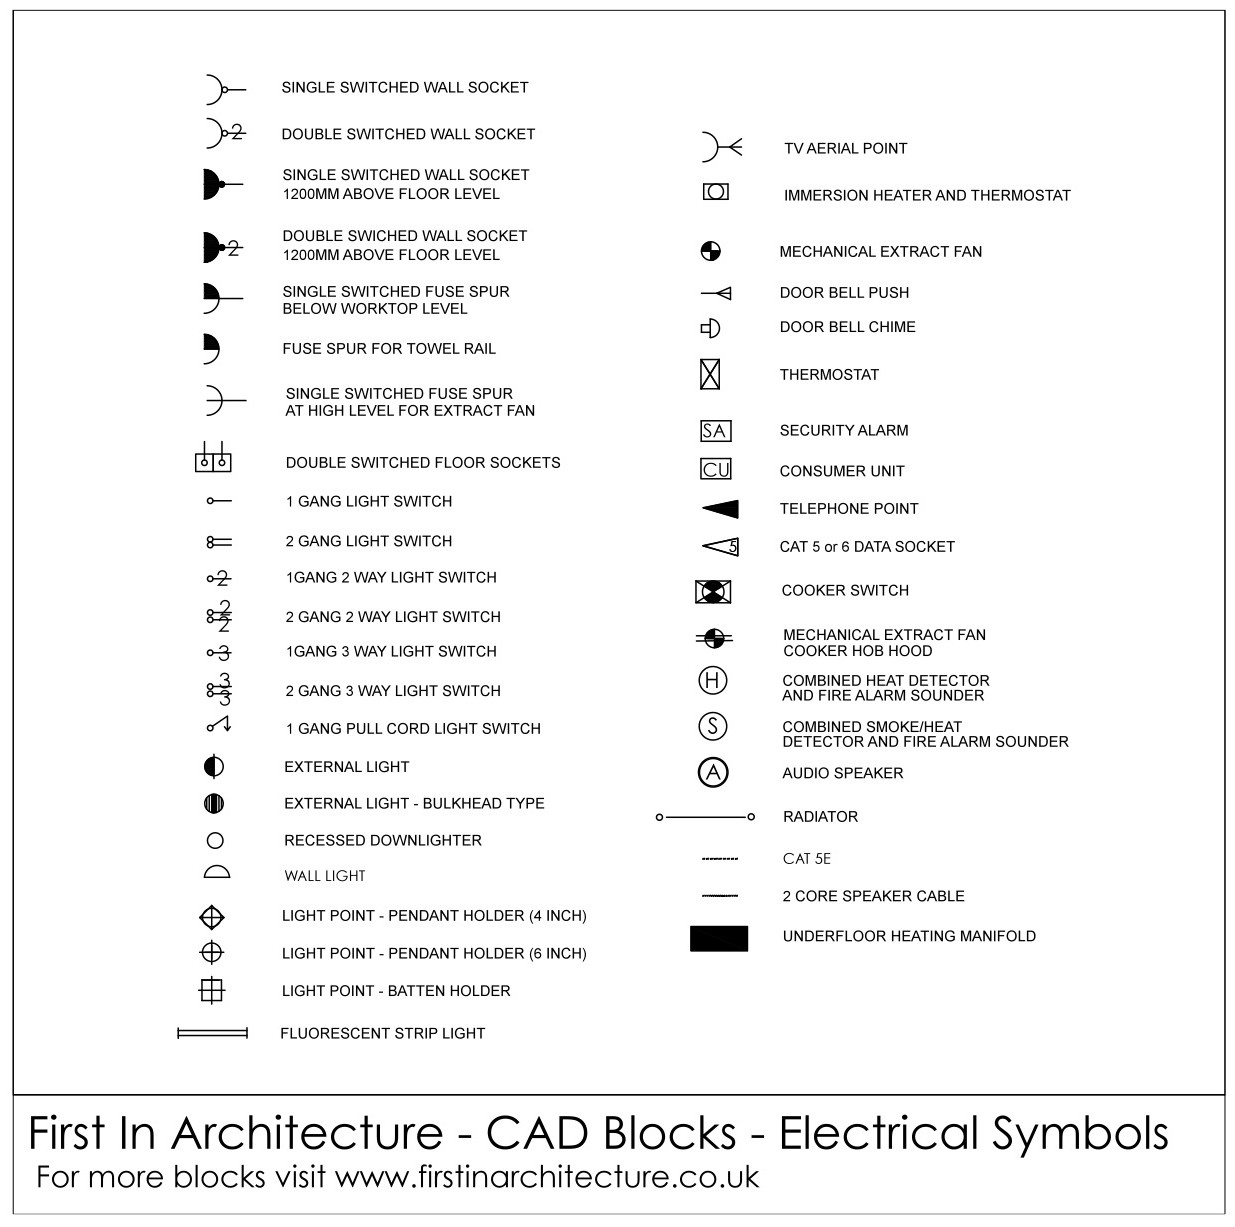 Free Cad Blocks Electrical Symbols Wiring Diagram And Their Meanings